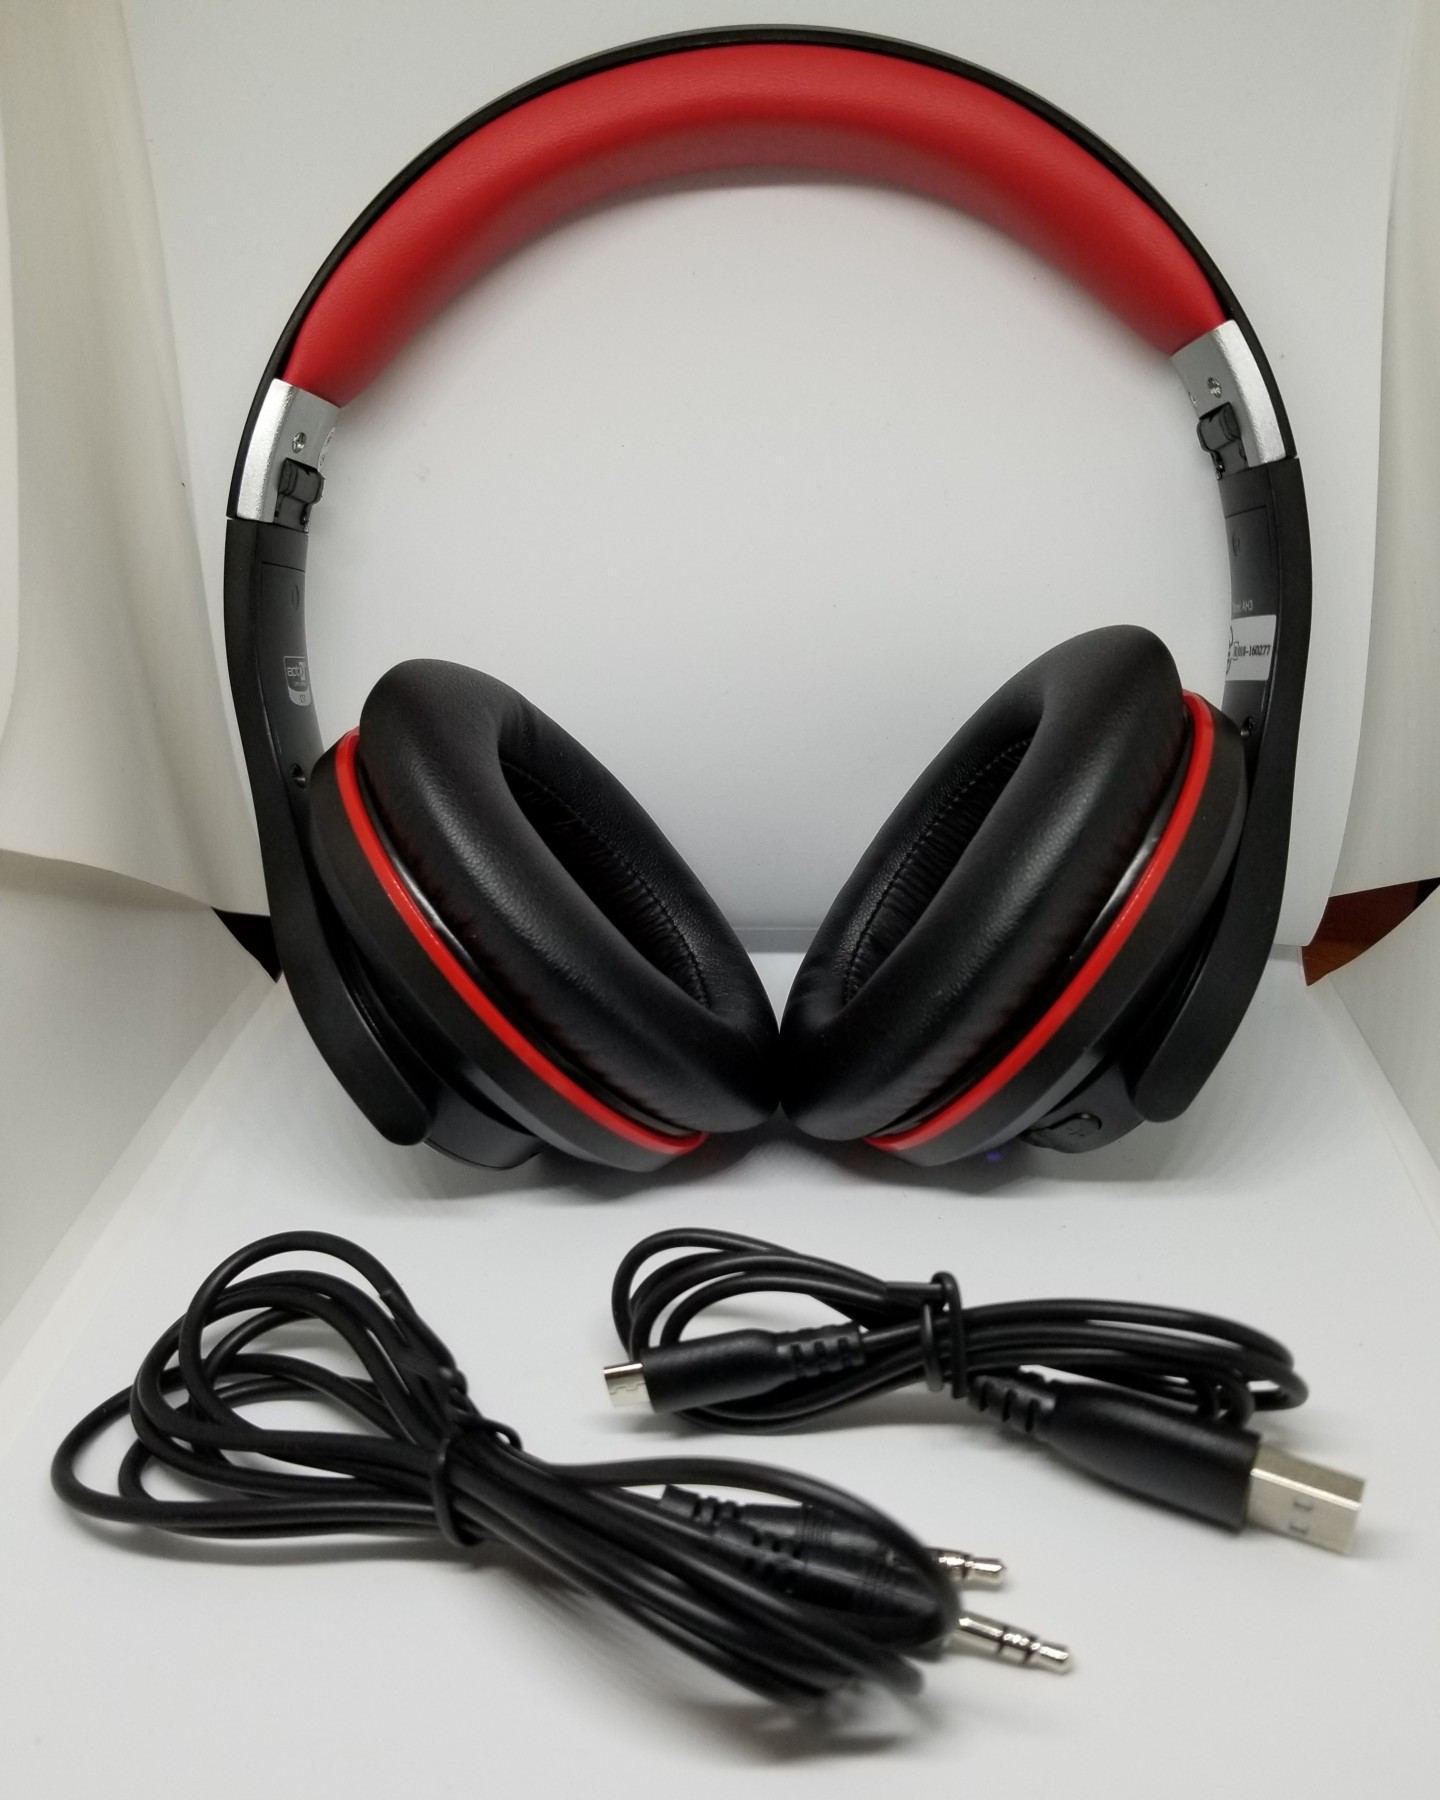 Great headset for long time usage